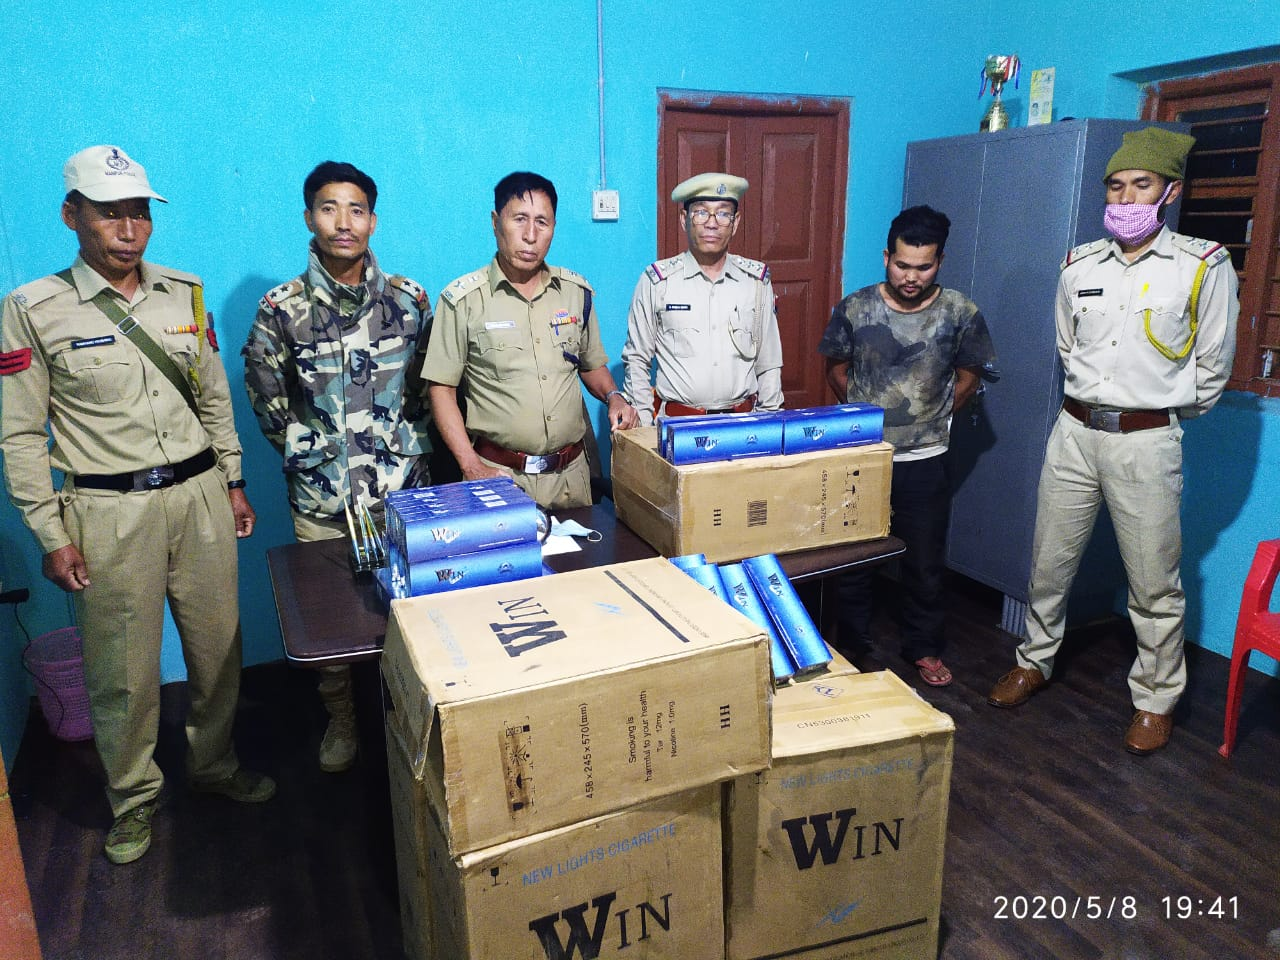 Smuggled packets of WIN cigarette seized